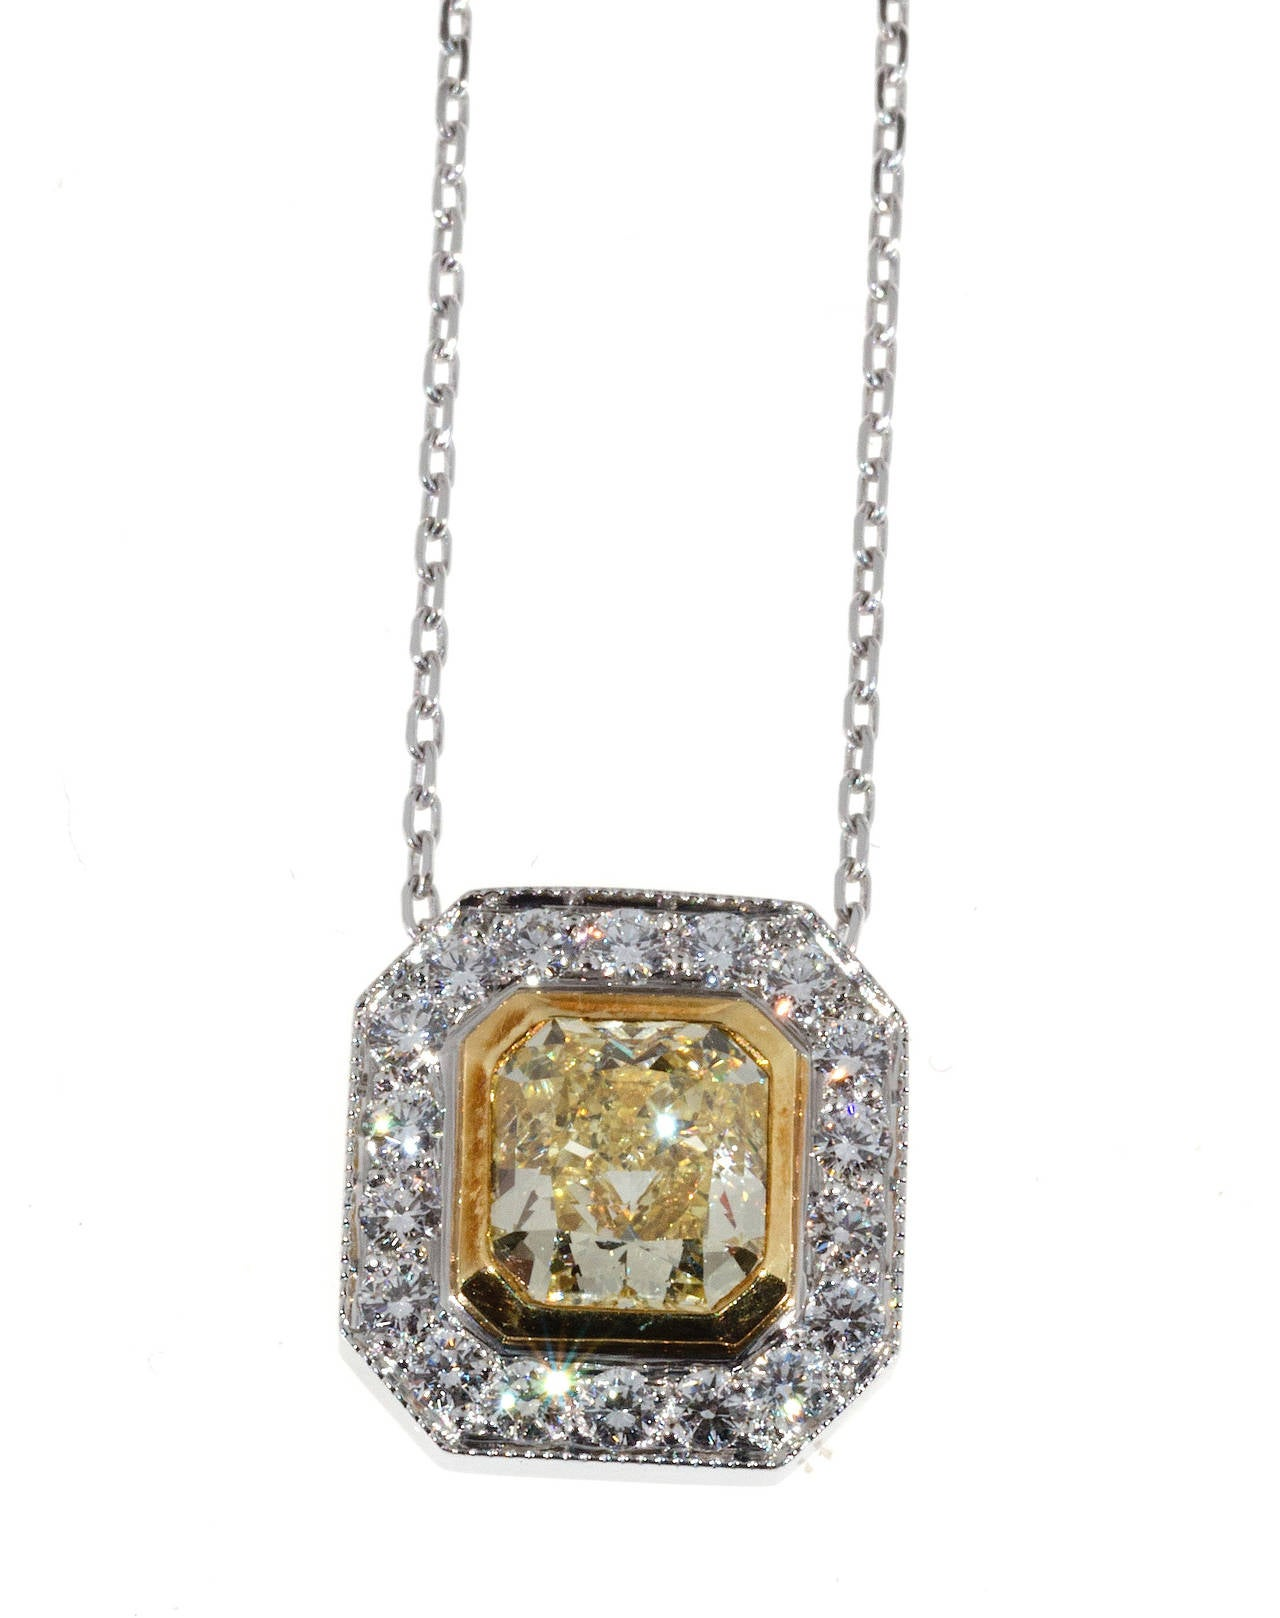 Radiant cut good fancy yellow canary diamond from an estate. Handmade platinum and 18k yellow gold setting from the Peter Suchy workshop. Pendant slides on chain. Extremely well cut. Very nice. ½ inch across.